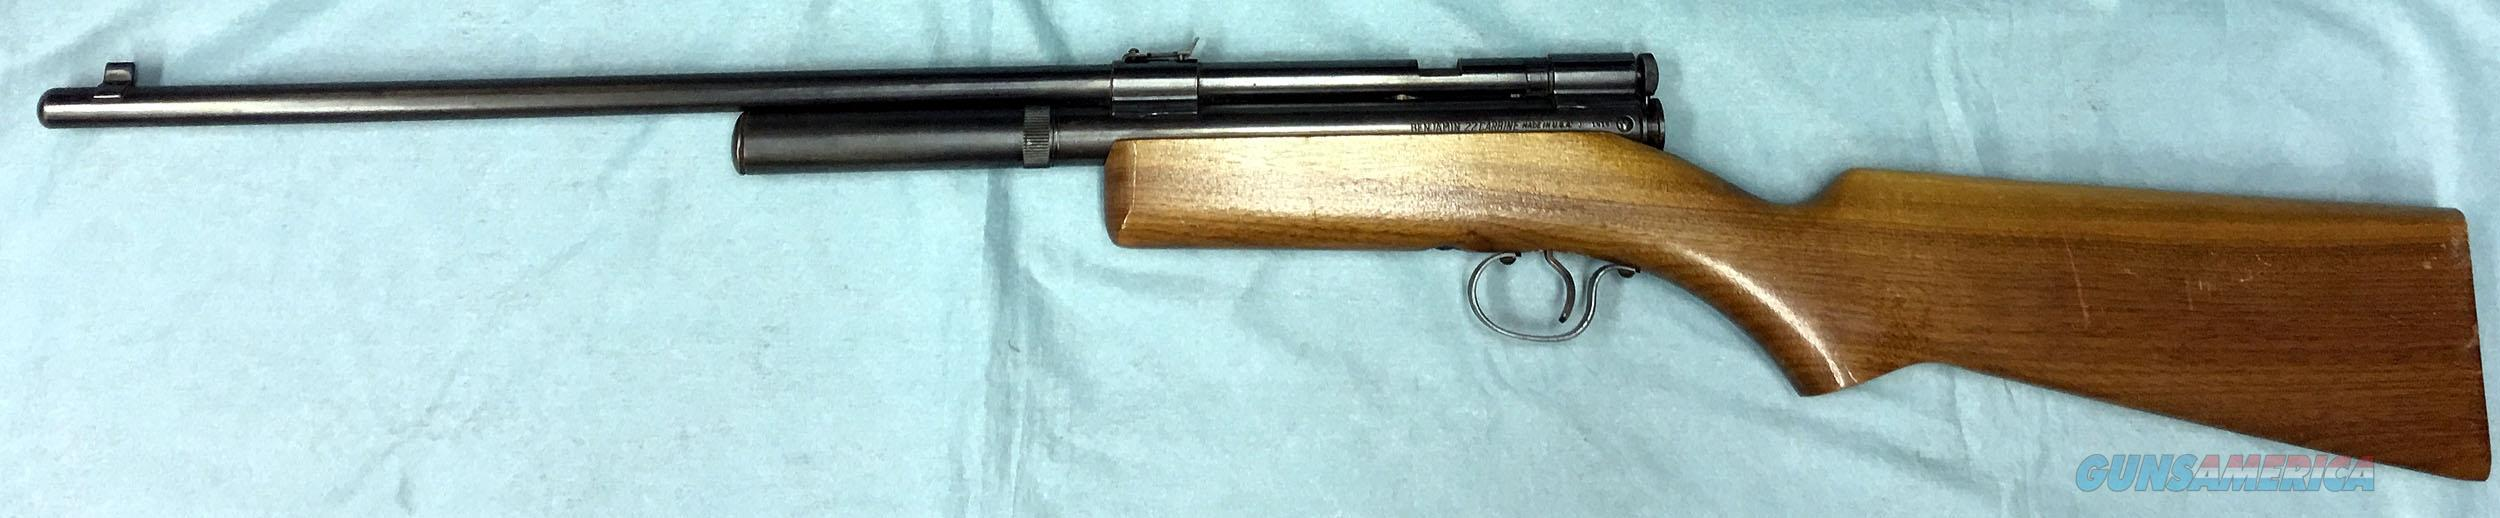 VINTAGE BENJAMIN AIR RIFLE - MODEL 352 -  22